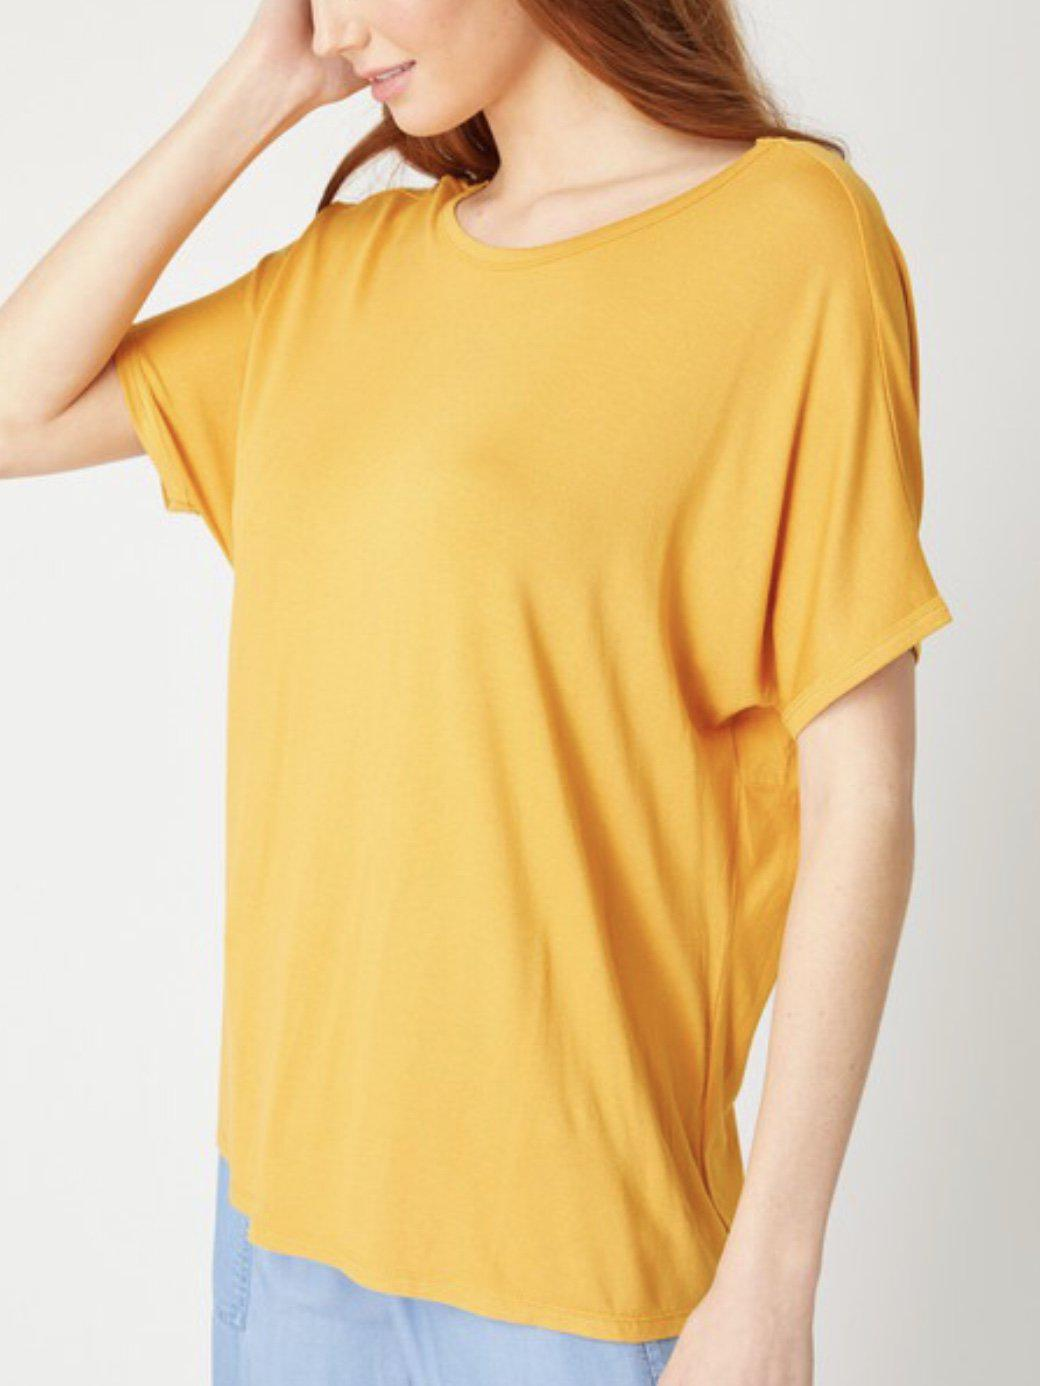 KNOT A PROBLEM TOP - MANGO-Women's TOP-New Arrivals-Runway Seven